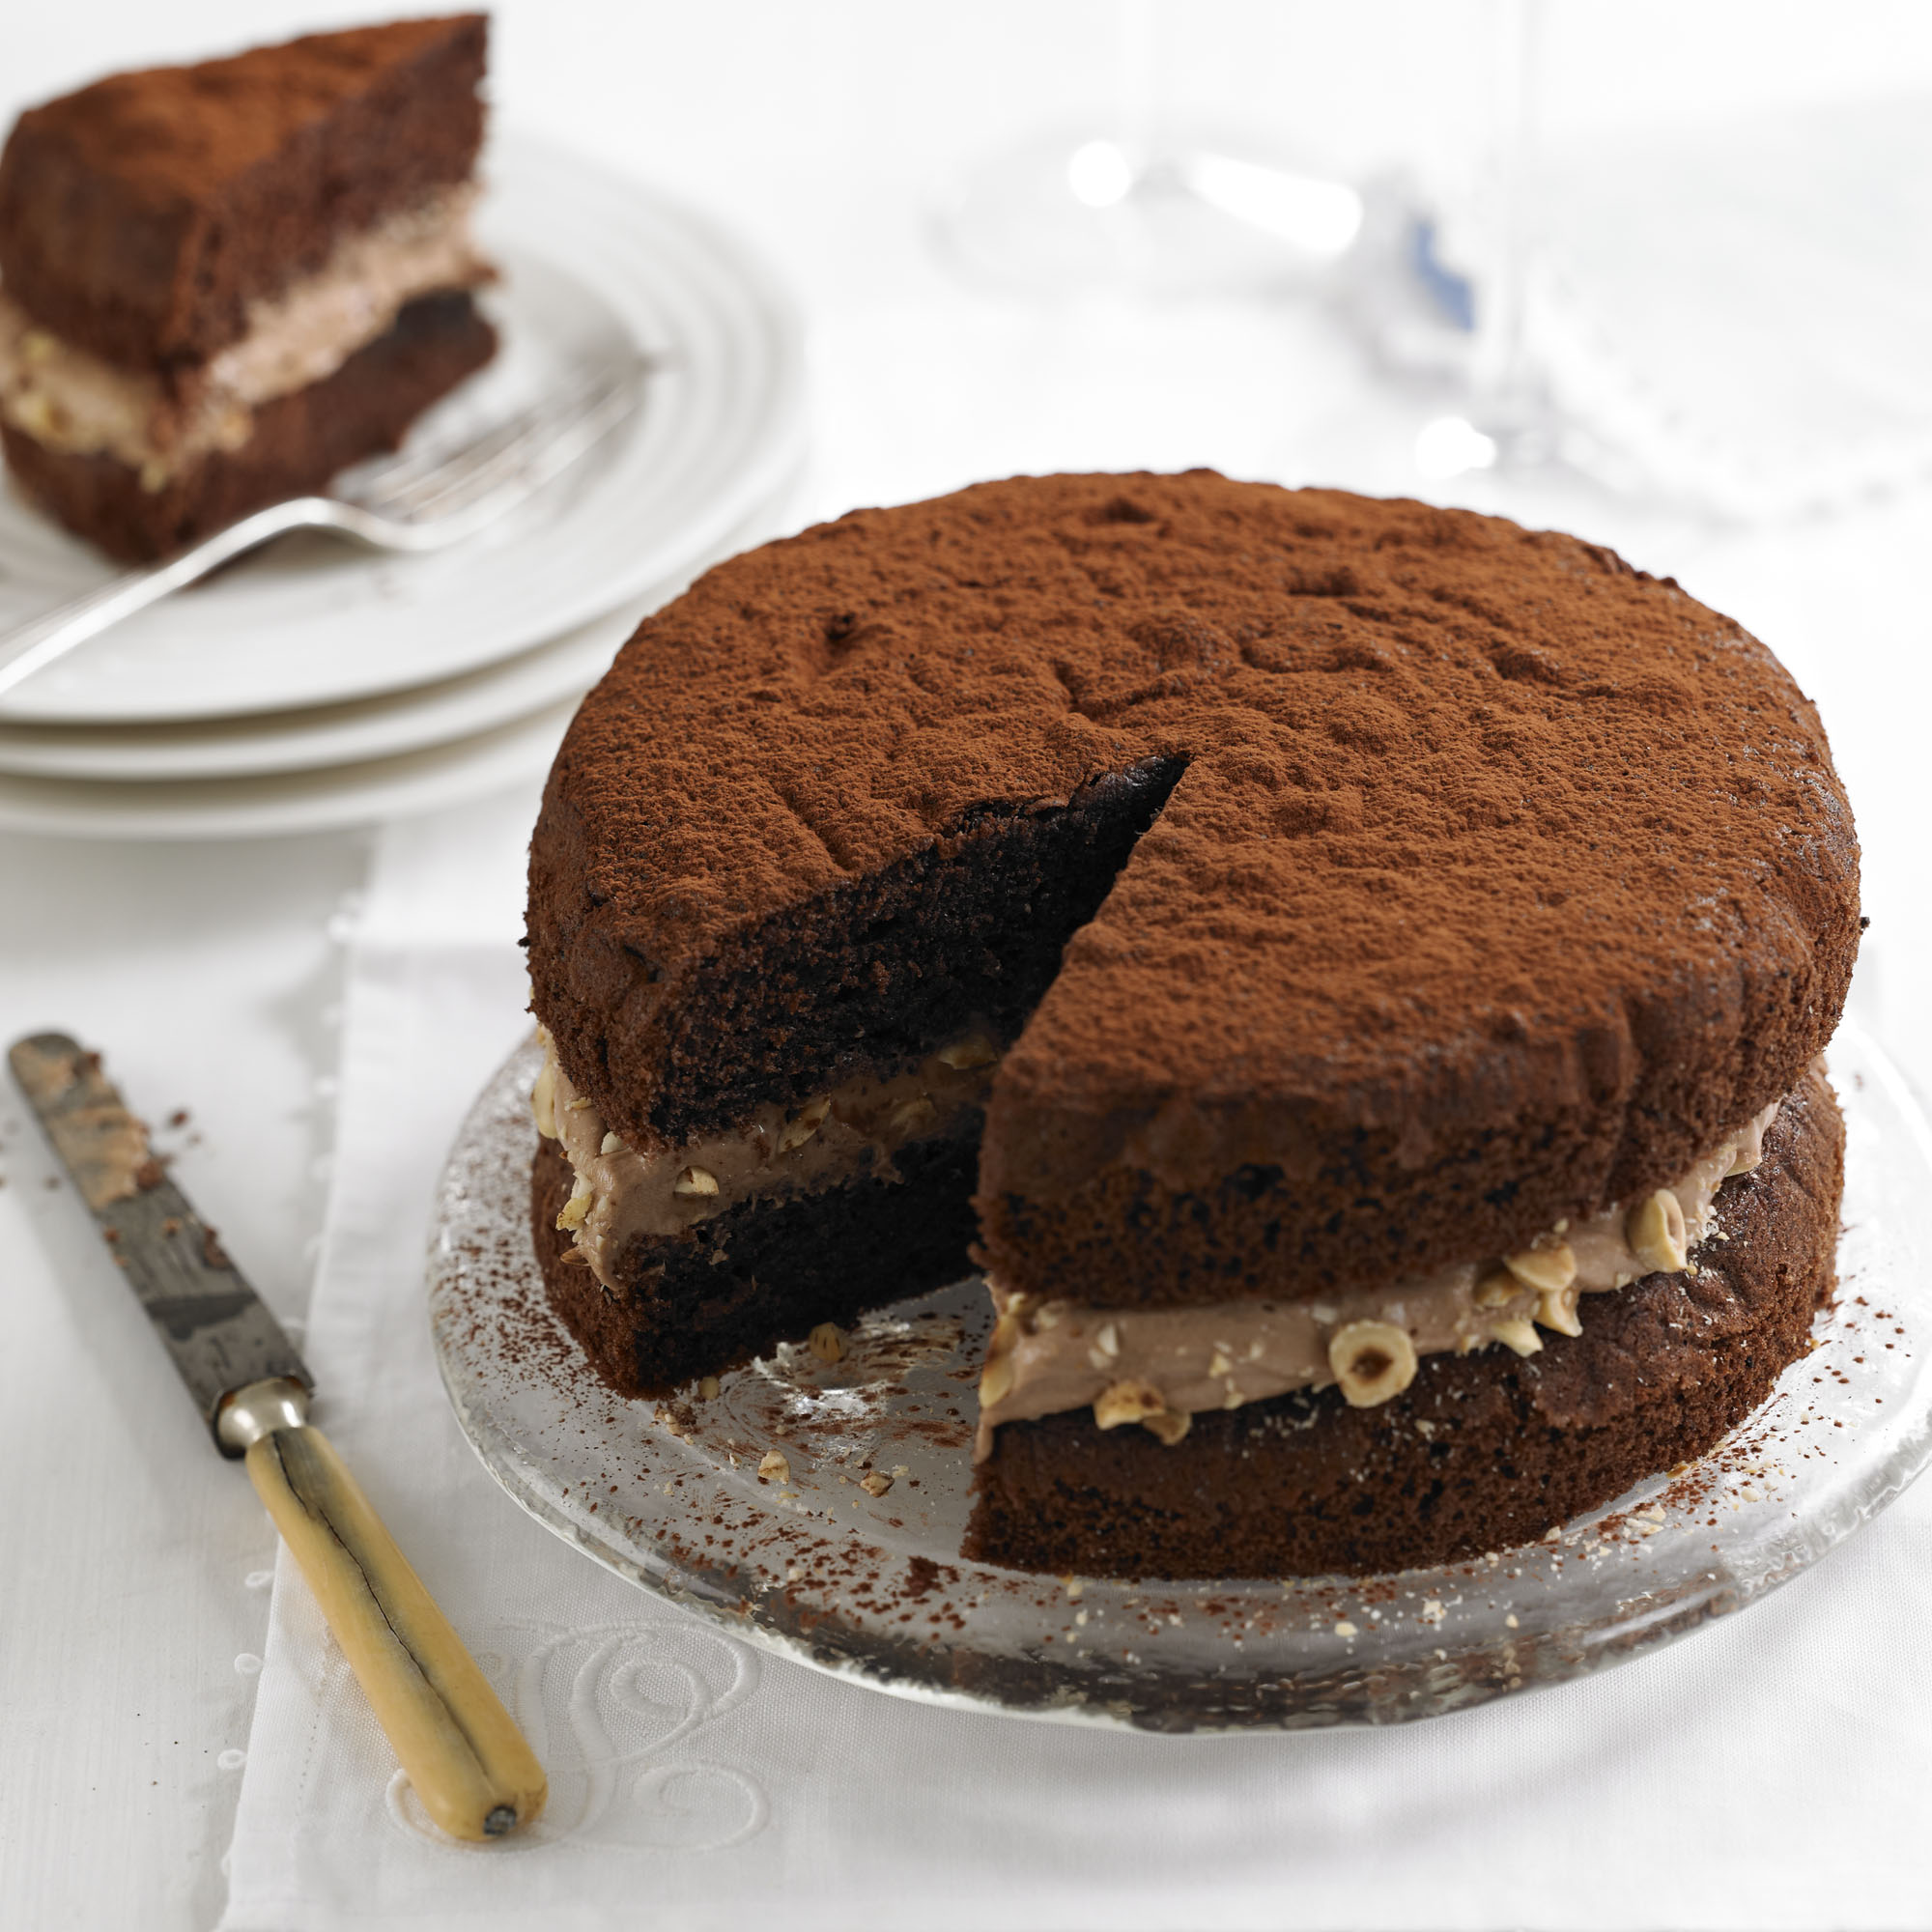 Simple chocolate sponge cake recipe